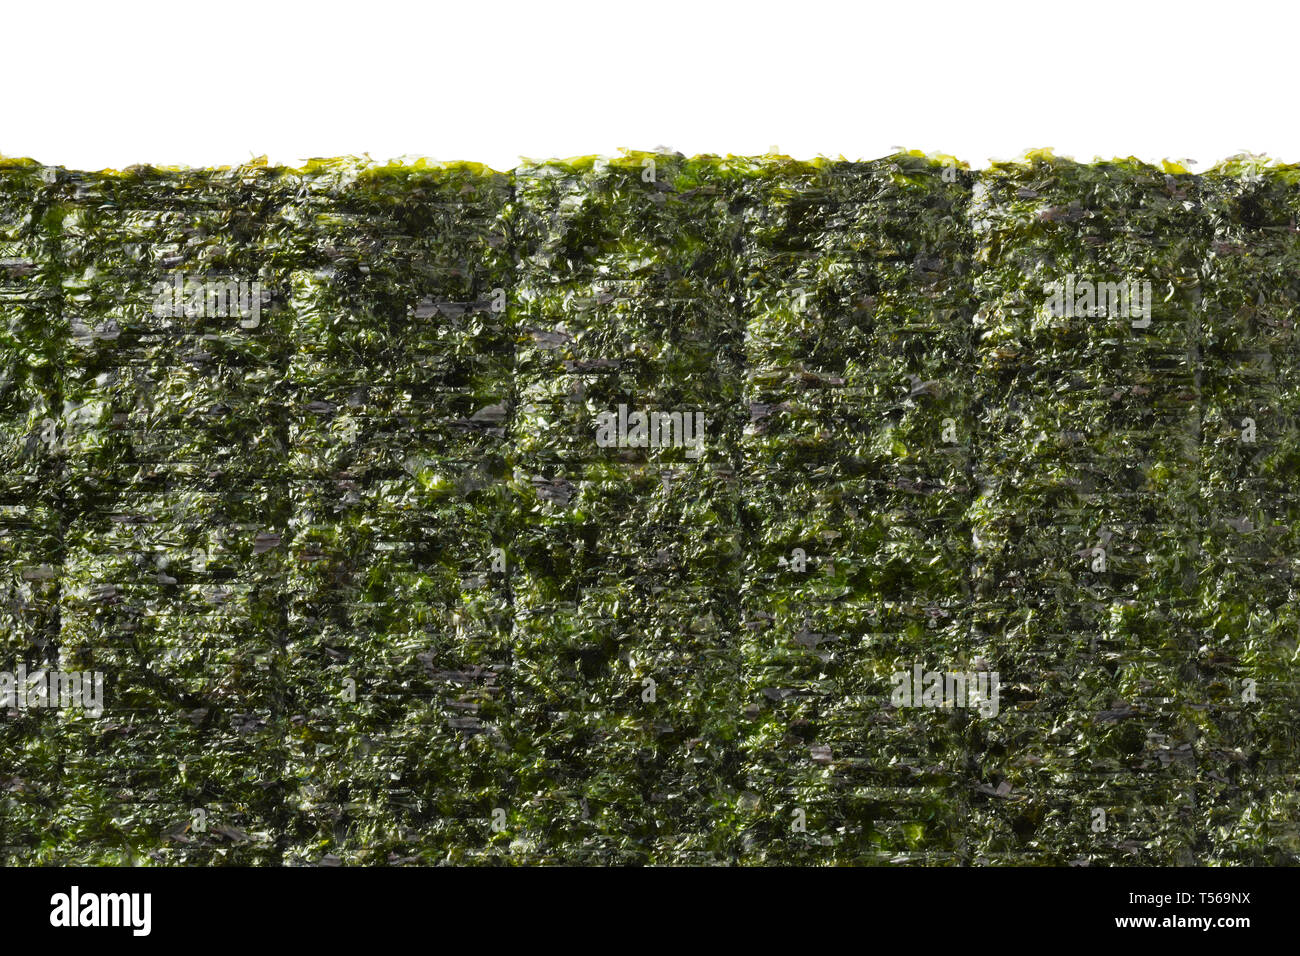 Sheet of dried green nori with space for text at the top - Stock Image